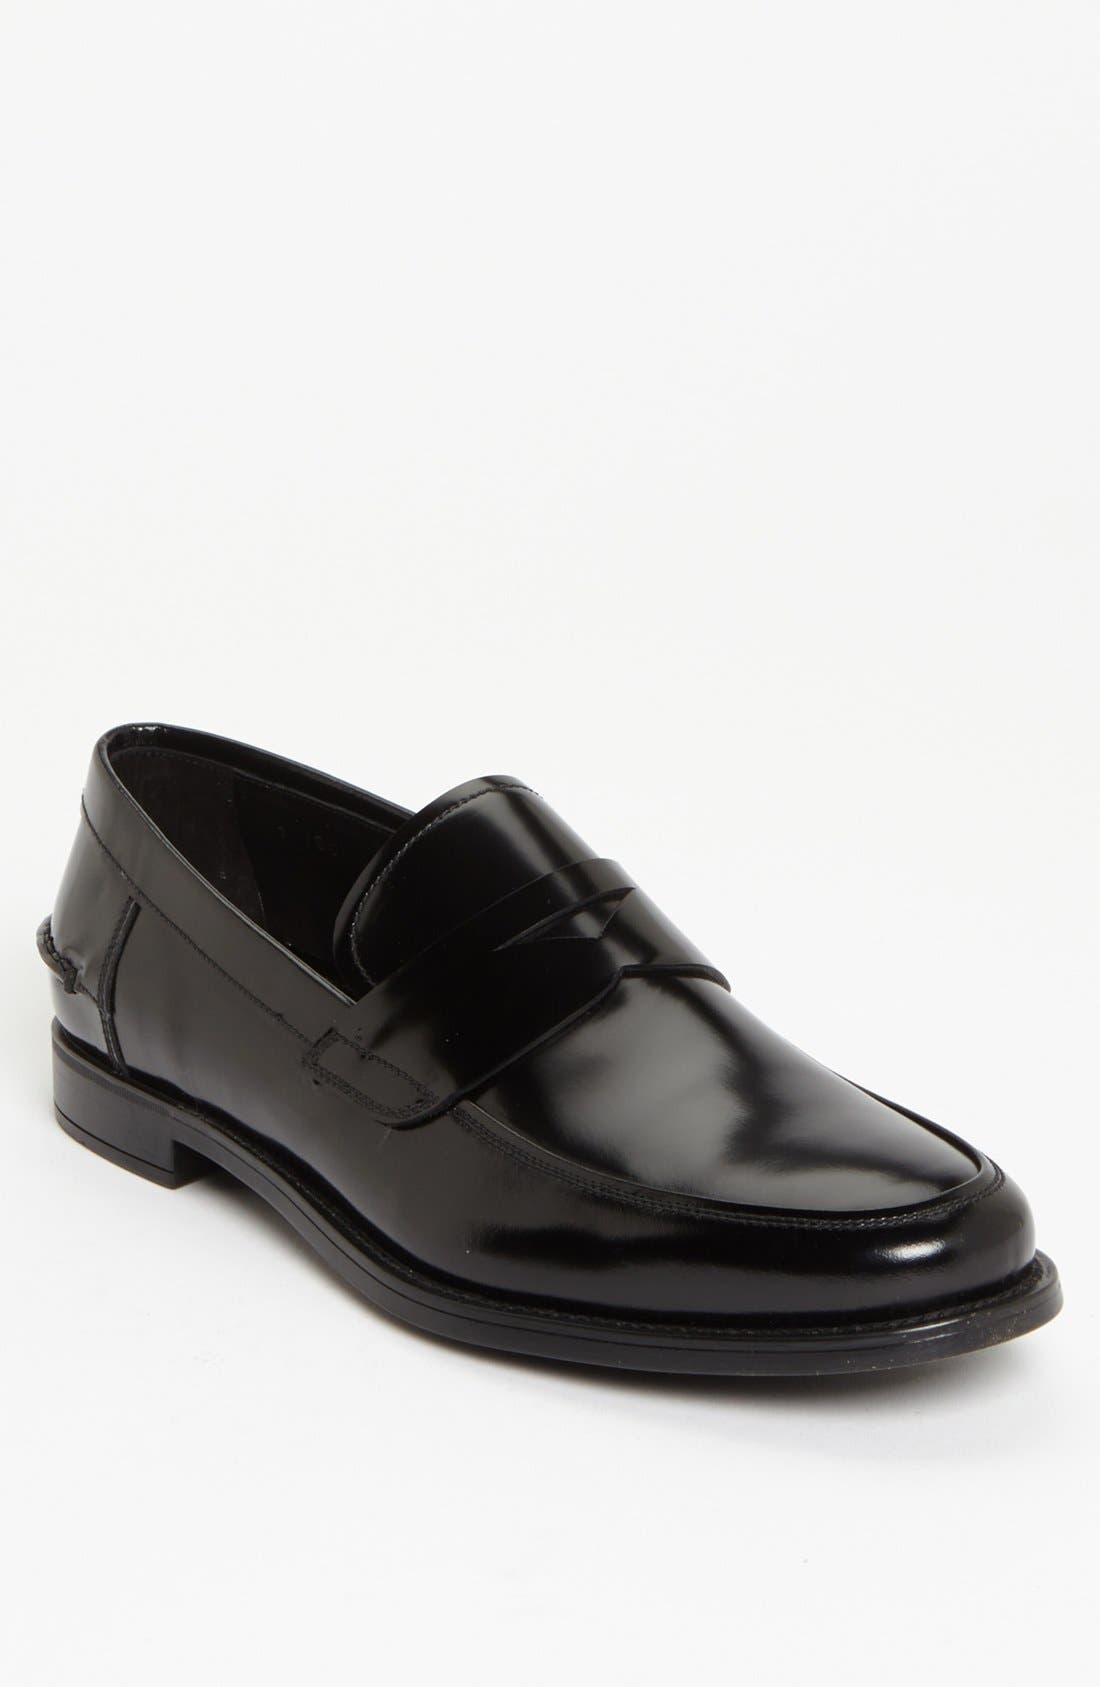 Alternate Image 1 Selected - Prada Penny Loafer